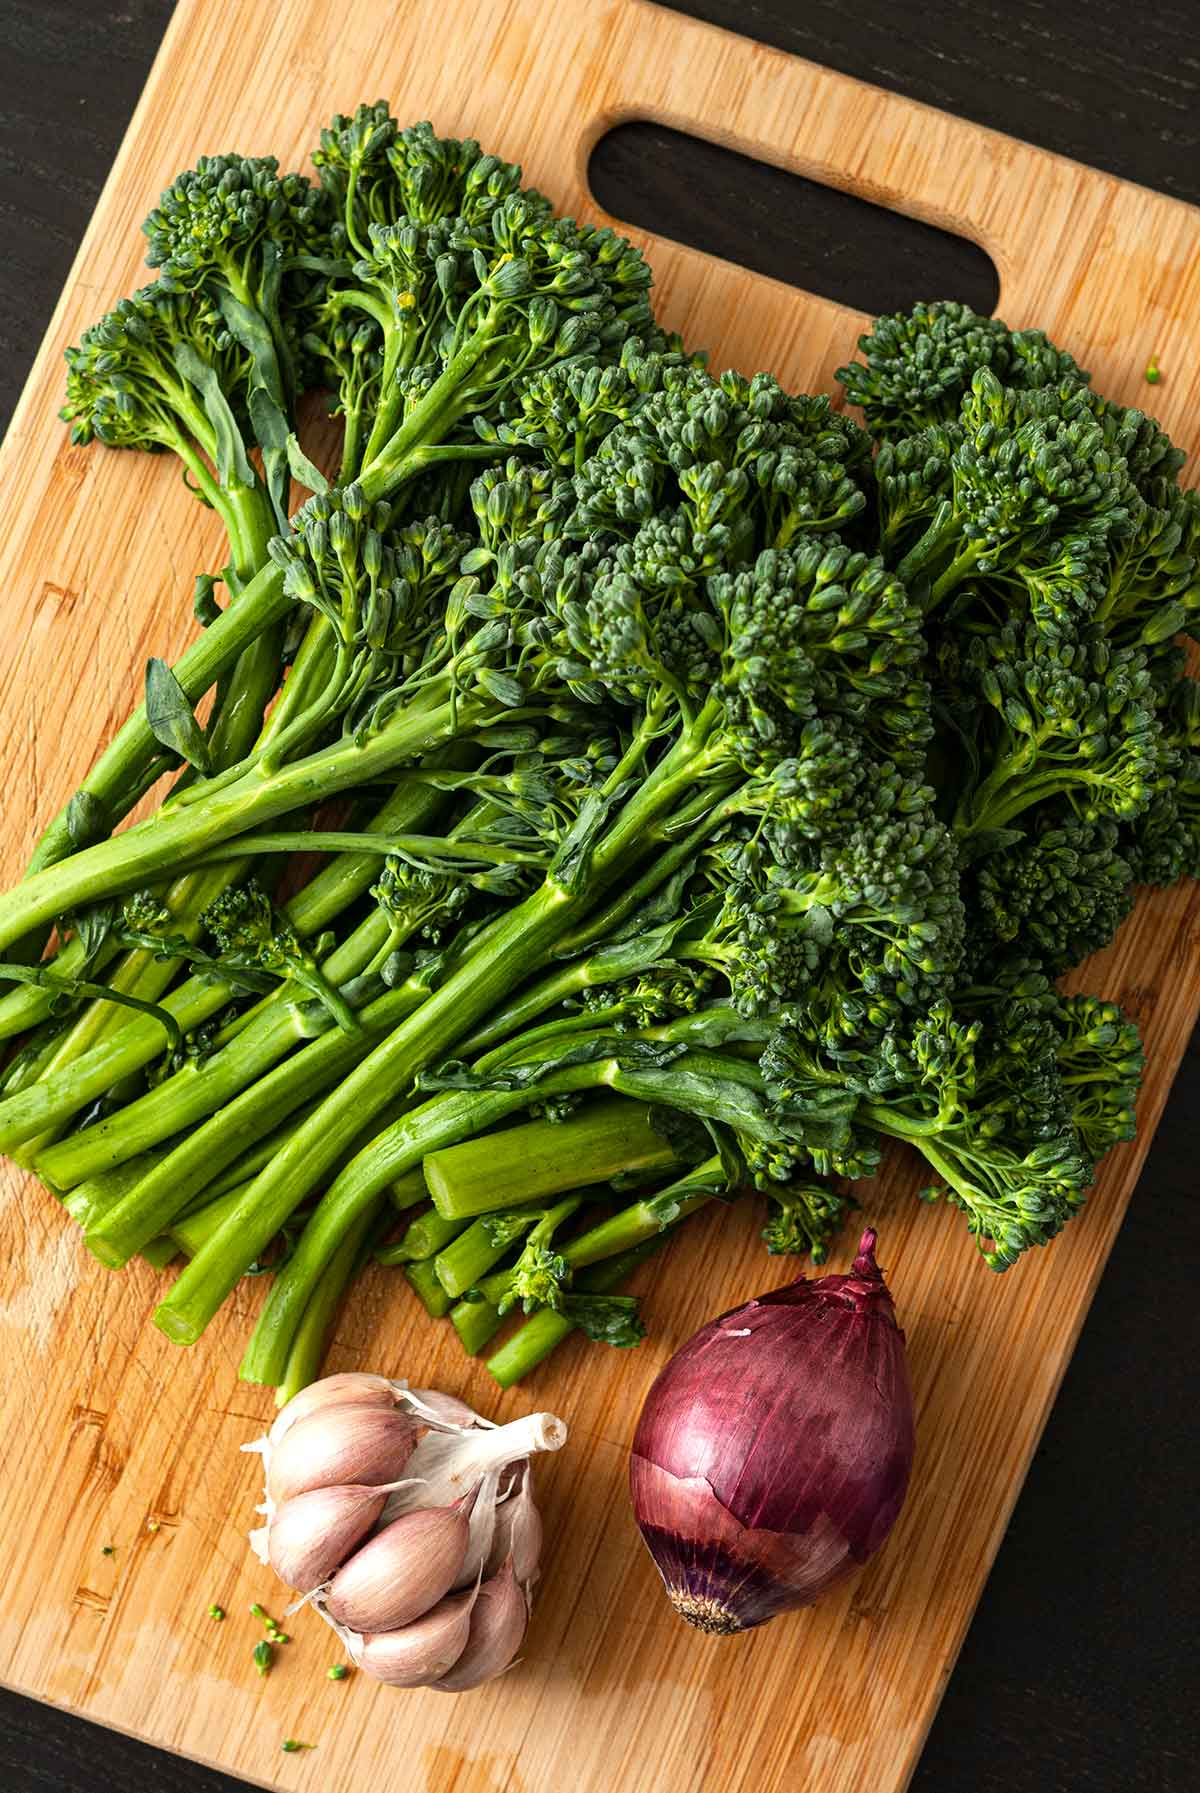 A bunch of raw broccoli rabe on a wooden cutting board with a small red onion and head of garlic.